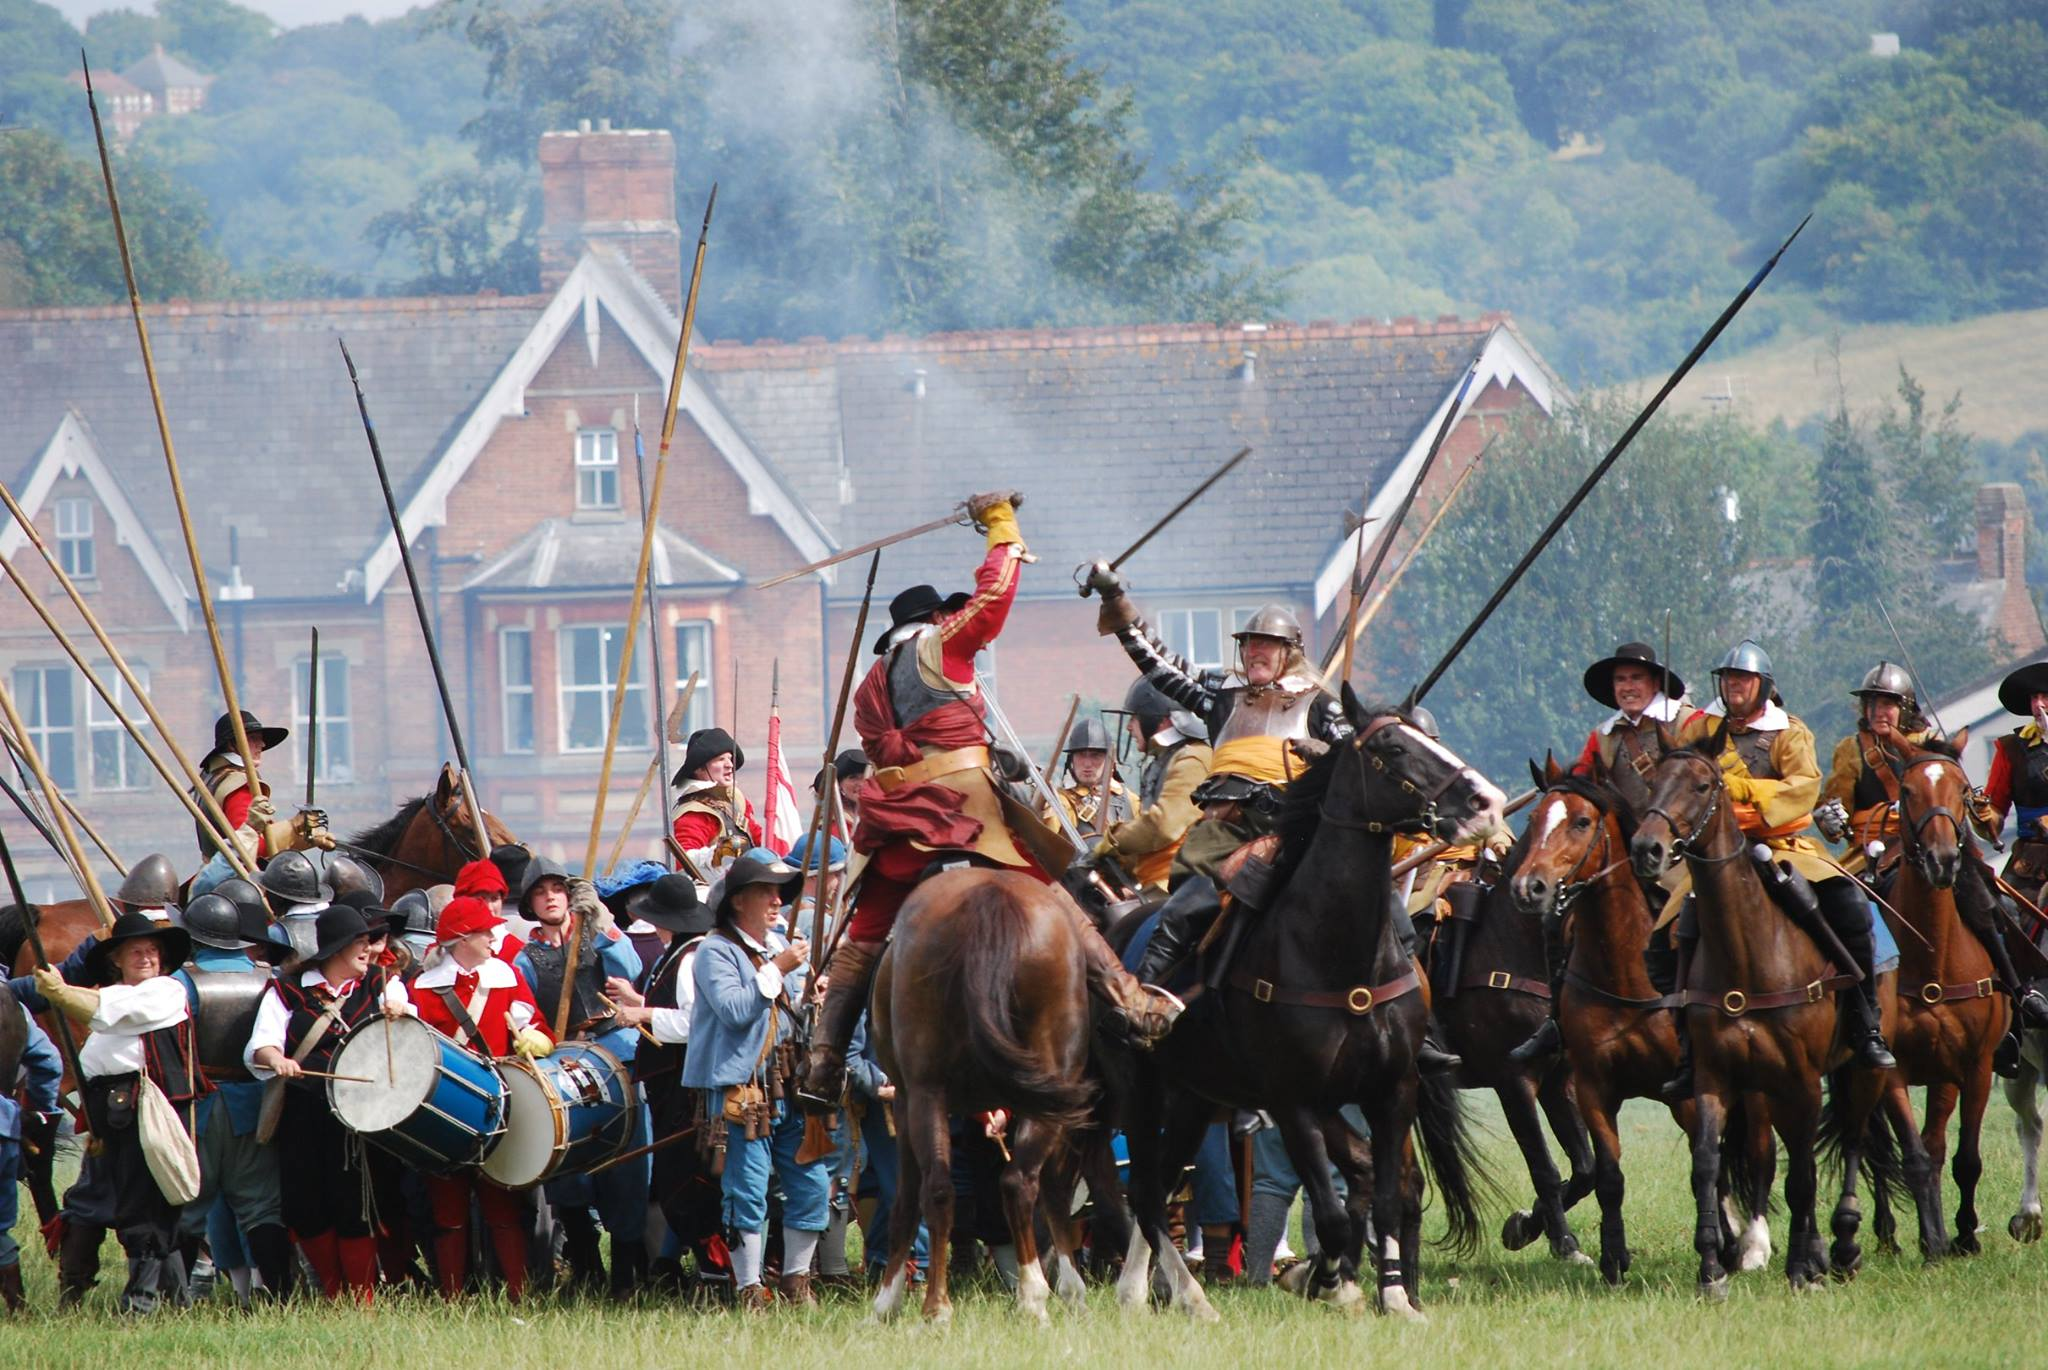 Cavalry fight and Hoptons